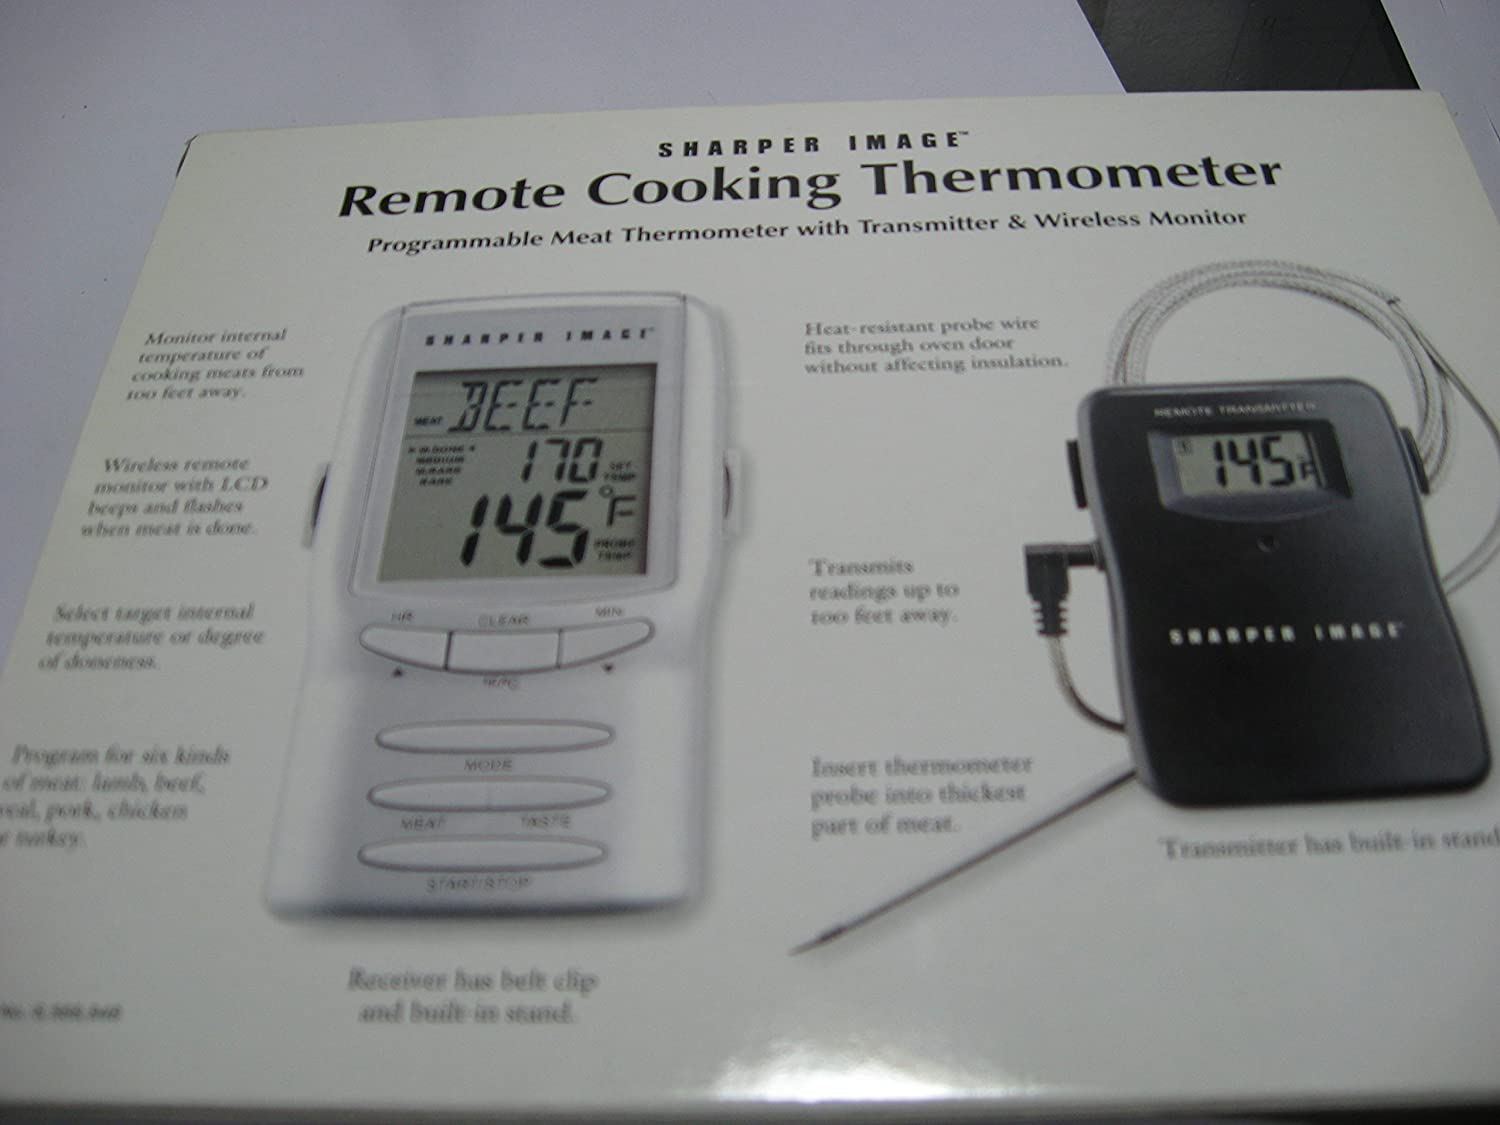 Amazon.com: Sharper Image Remote Cooking Oven BBQ Thermometer MI212: Kitchen & Dining